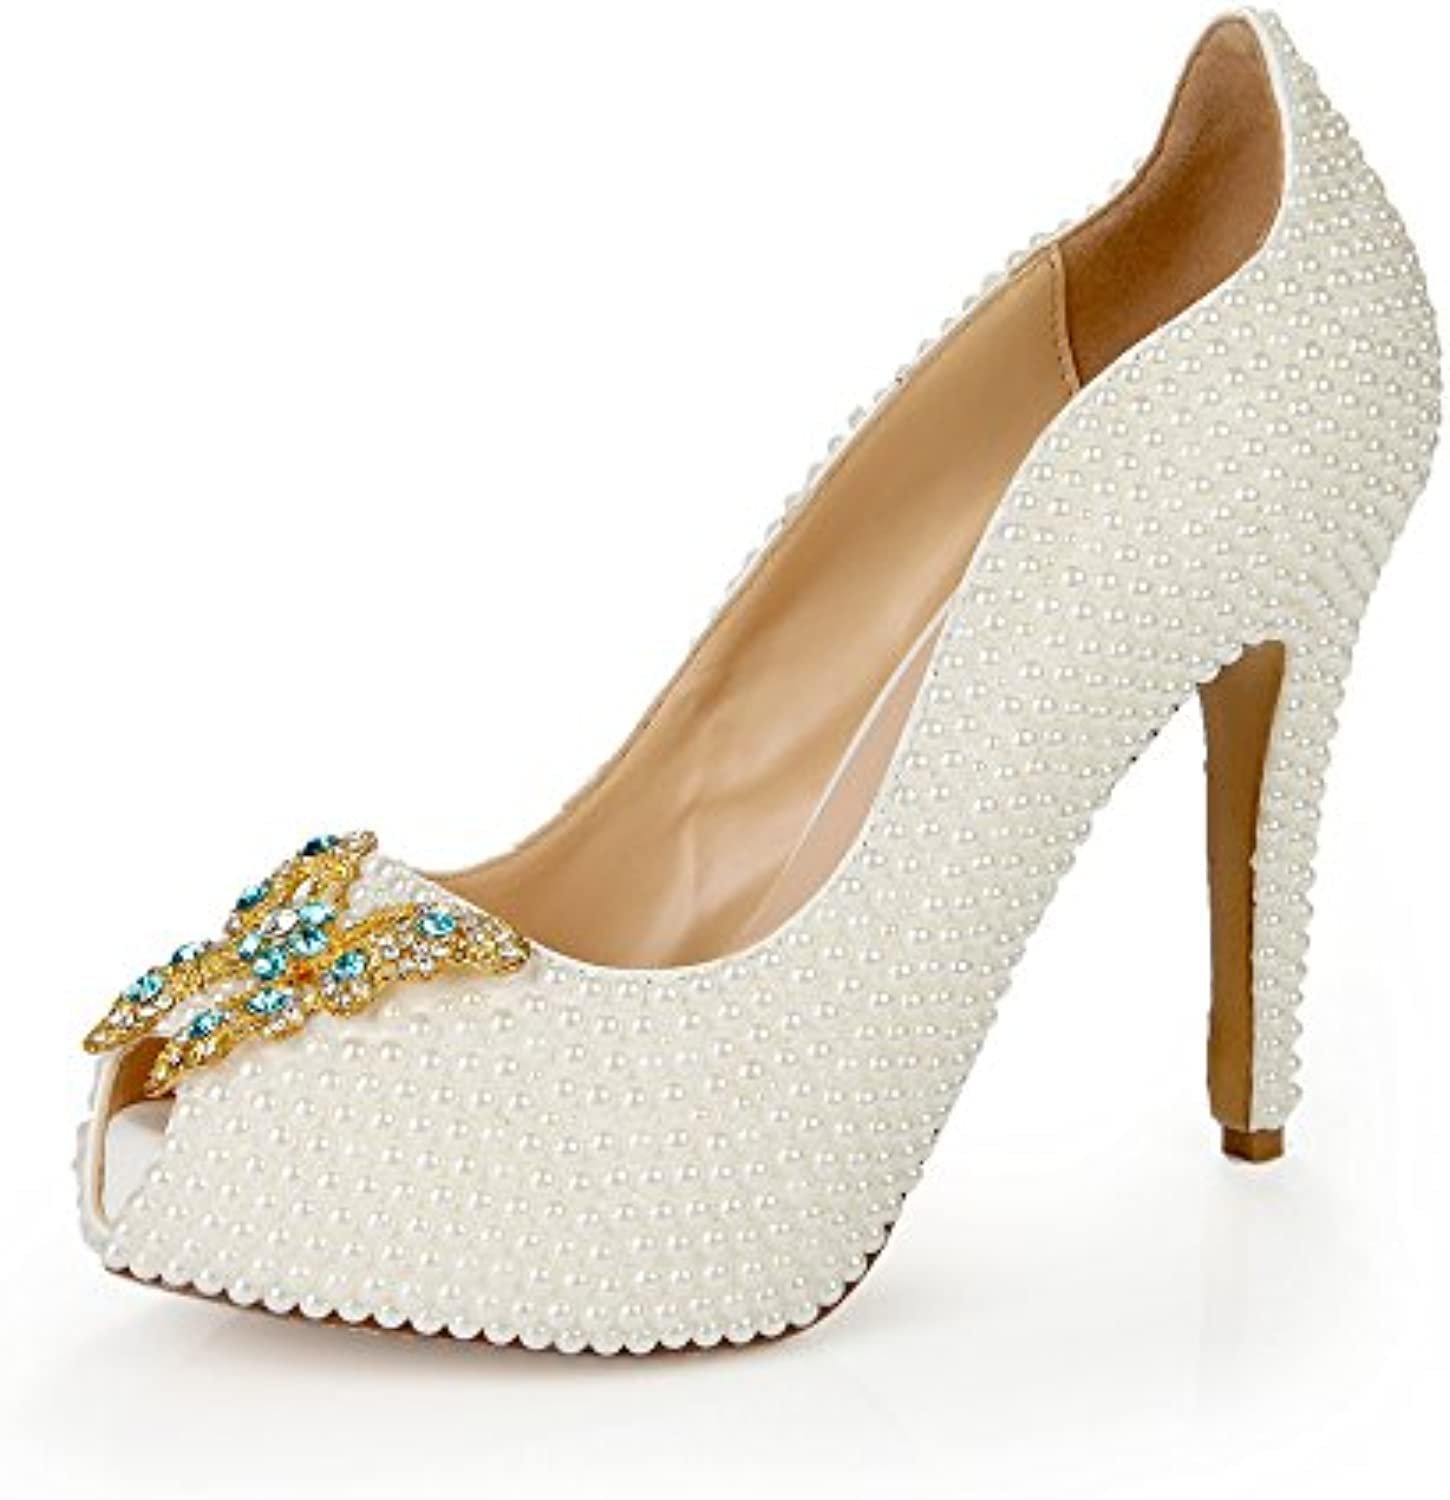 Lacitena Womens Ladies Pearl Butterfly Style High Heel Toe Pumps Peep Toe Heel Butterfly Style Pearl Wedding Shoes 17216b